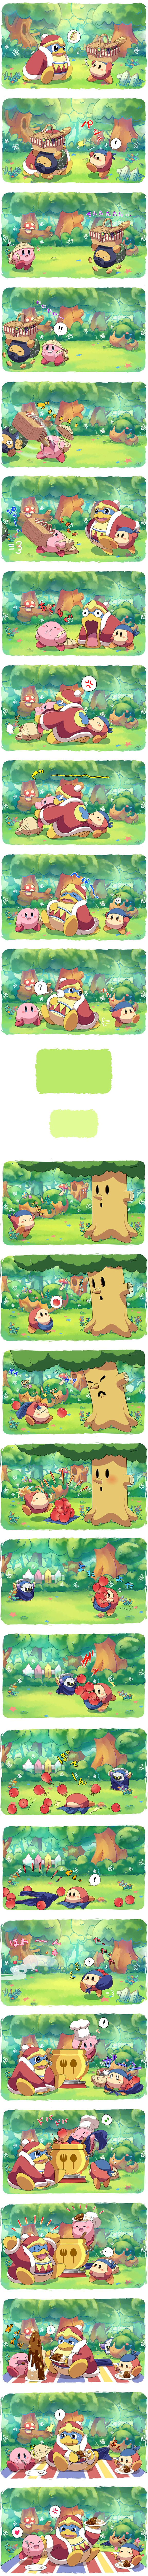 This is adorable! Has to be one of the cutest comics I've seen in a while! :)